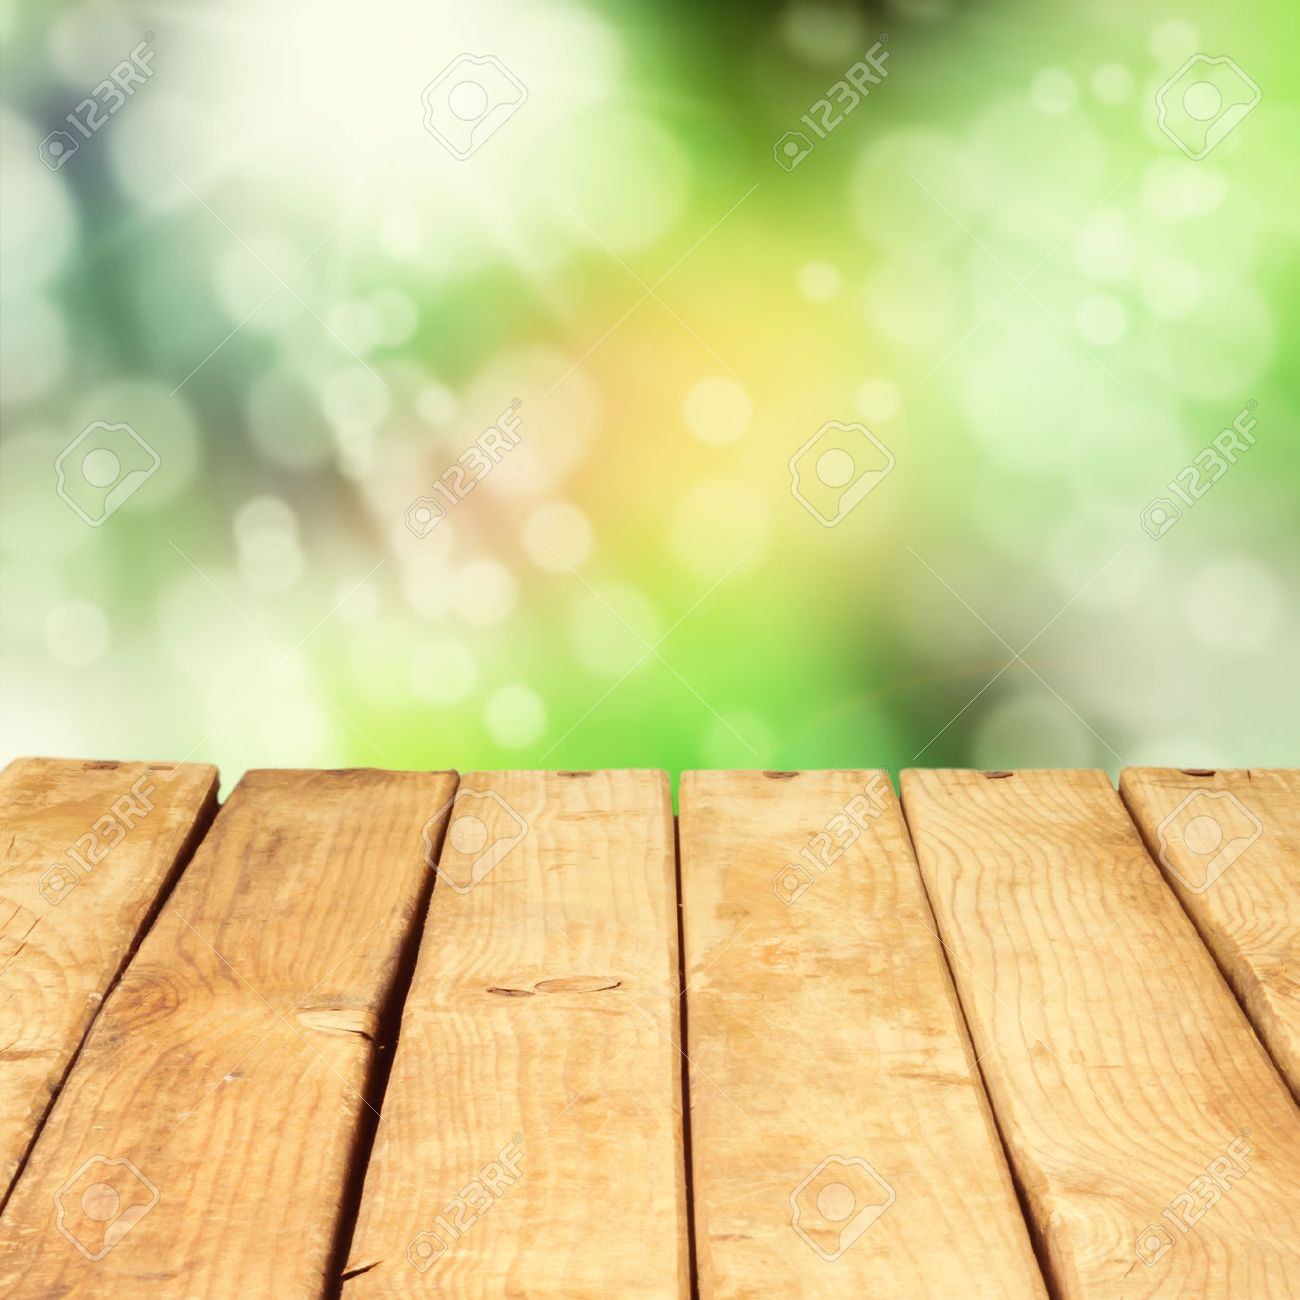 Picnic table background - Park Picnic Table Wooden Deck Table Over Beautiful Bokeh Background Stock Photo